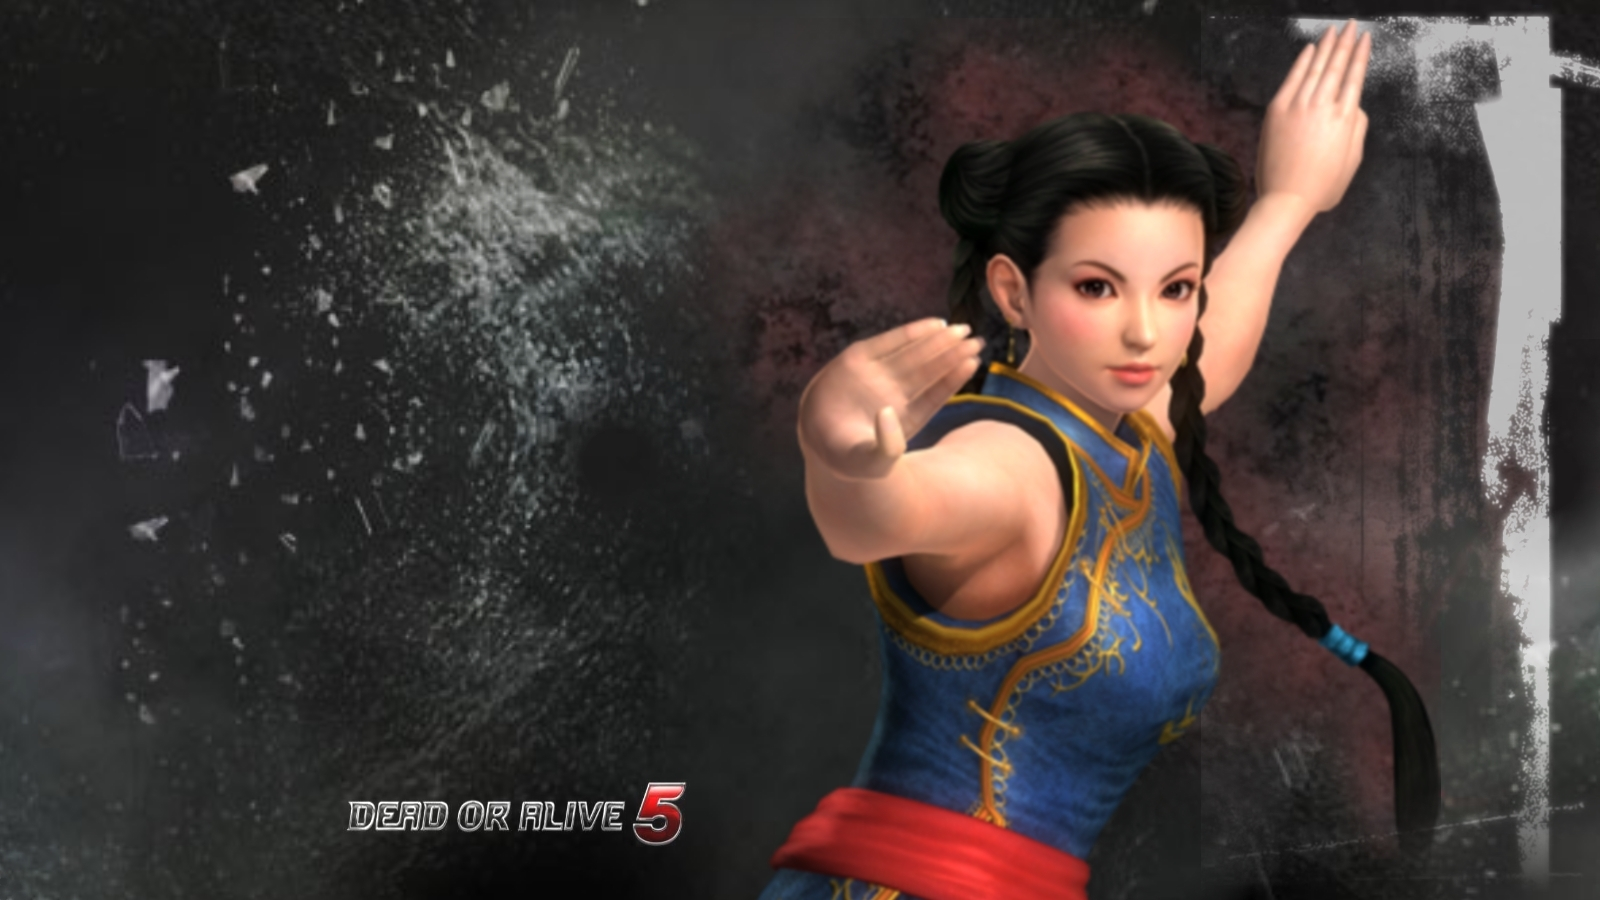 Dead Or Alive 5 HD Wallpaper 7779 Wallpaper Game 1600x900